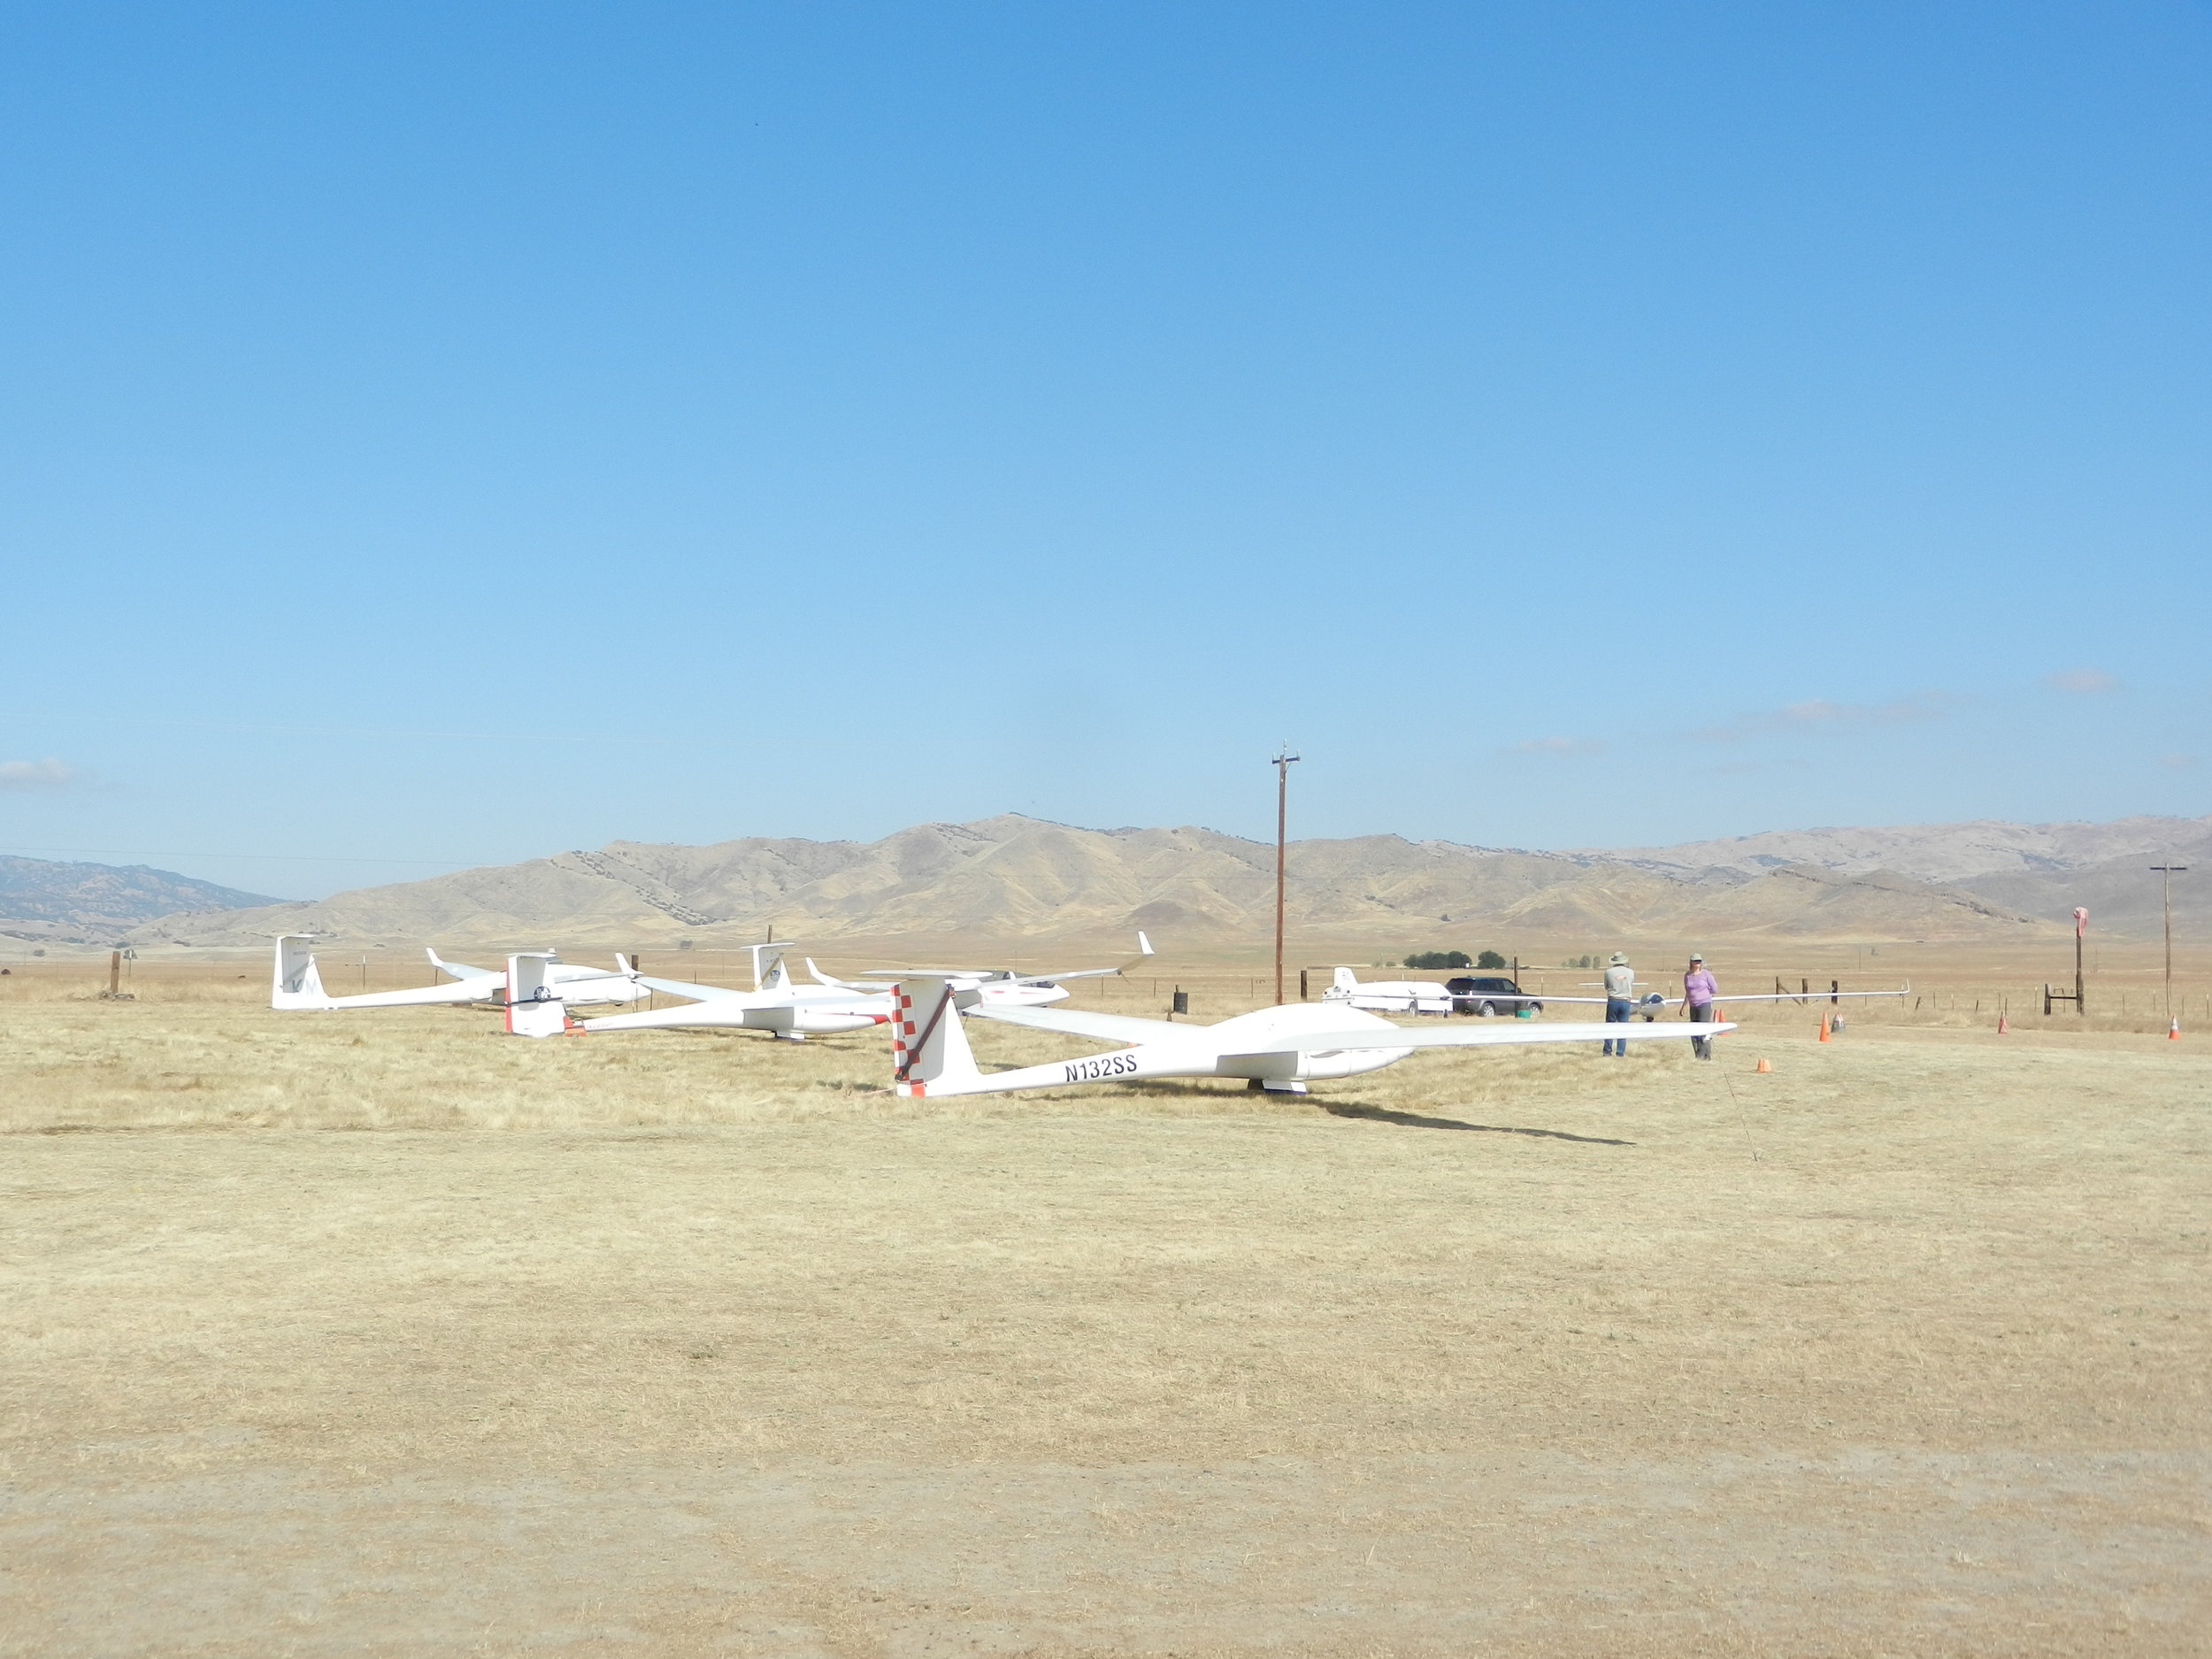 The flight line starts to form as glider arrive and are assembled